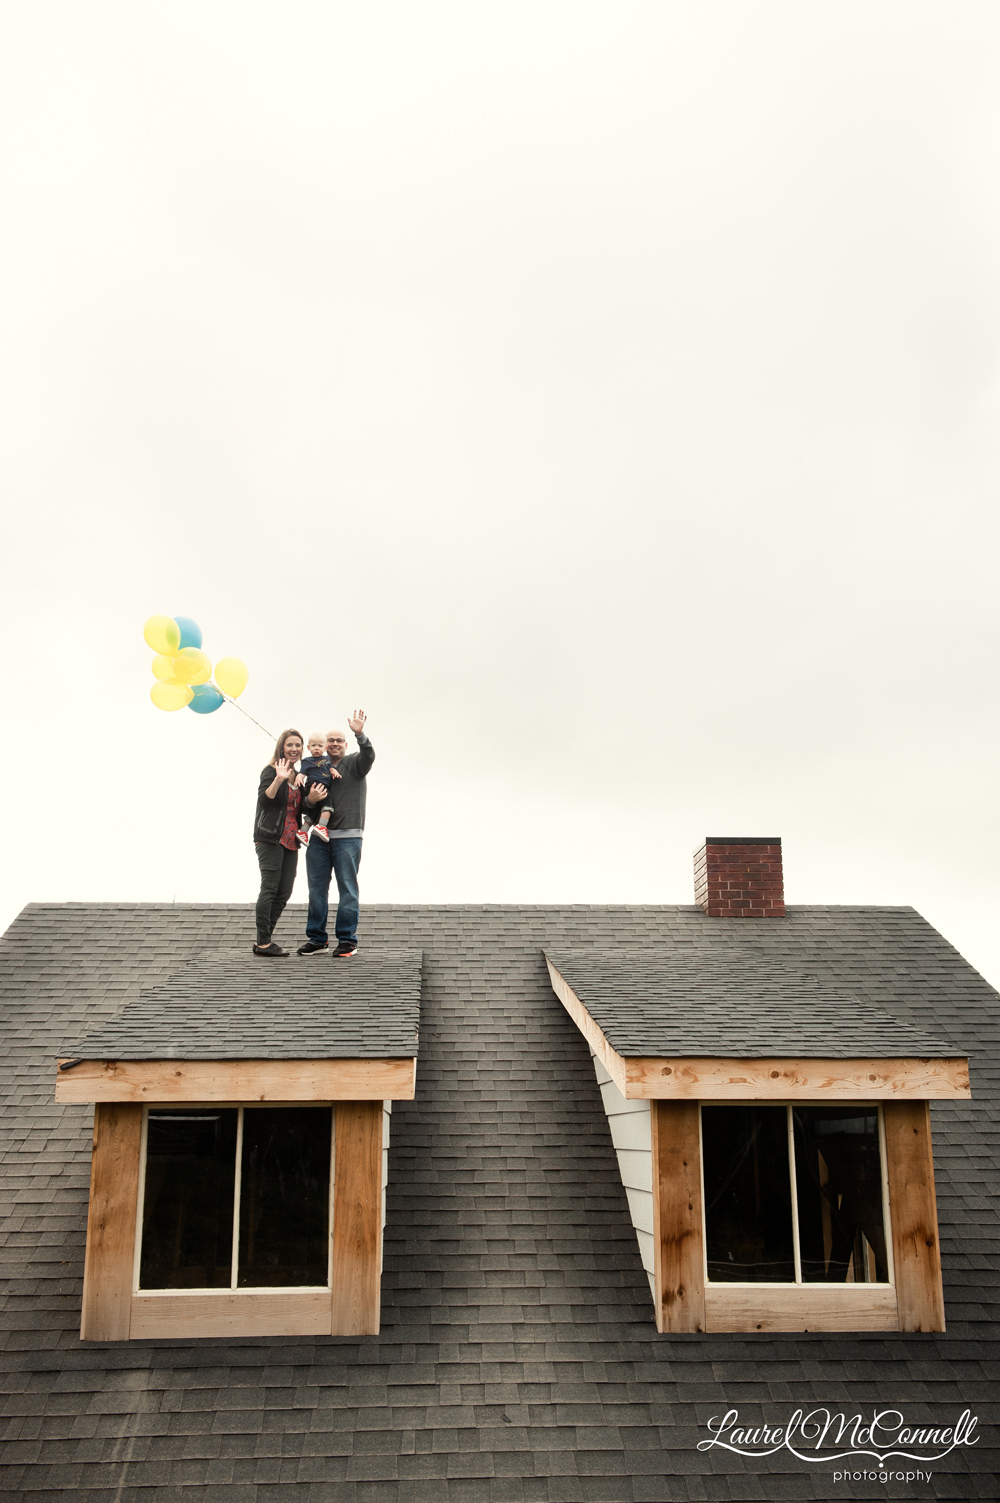 Fun portrait of family on roof with balloons.